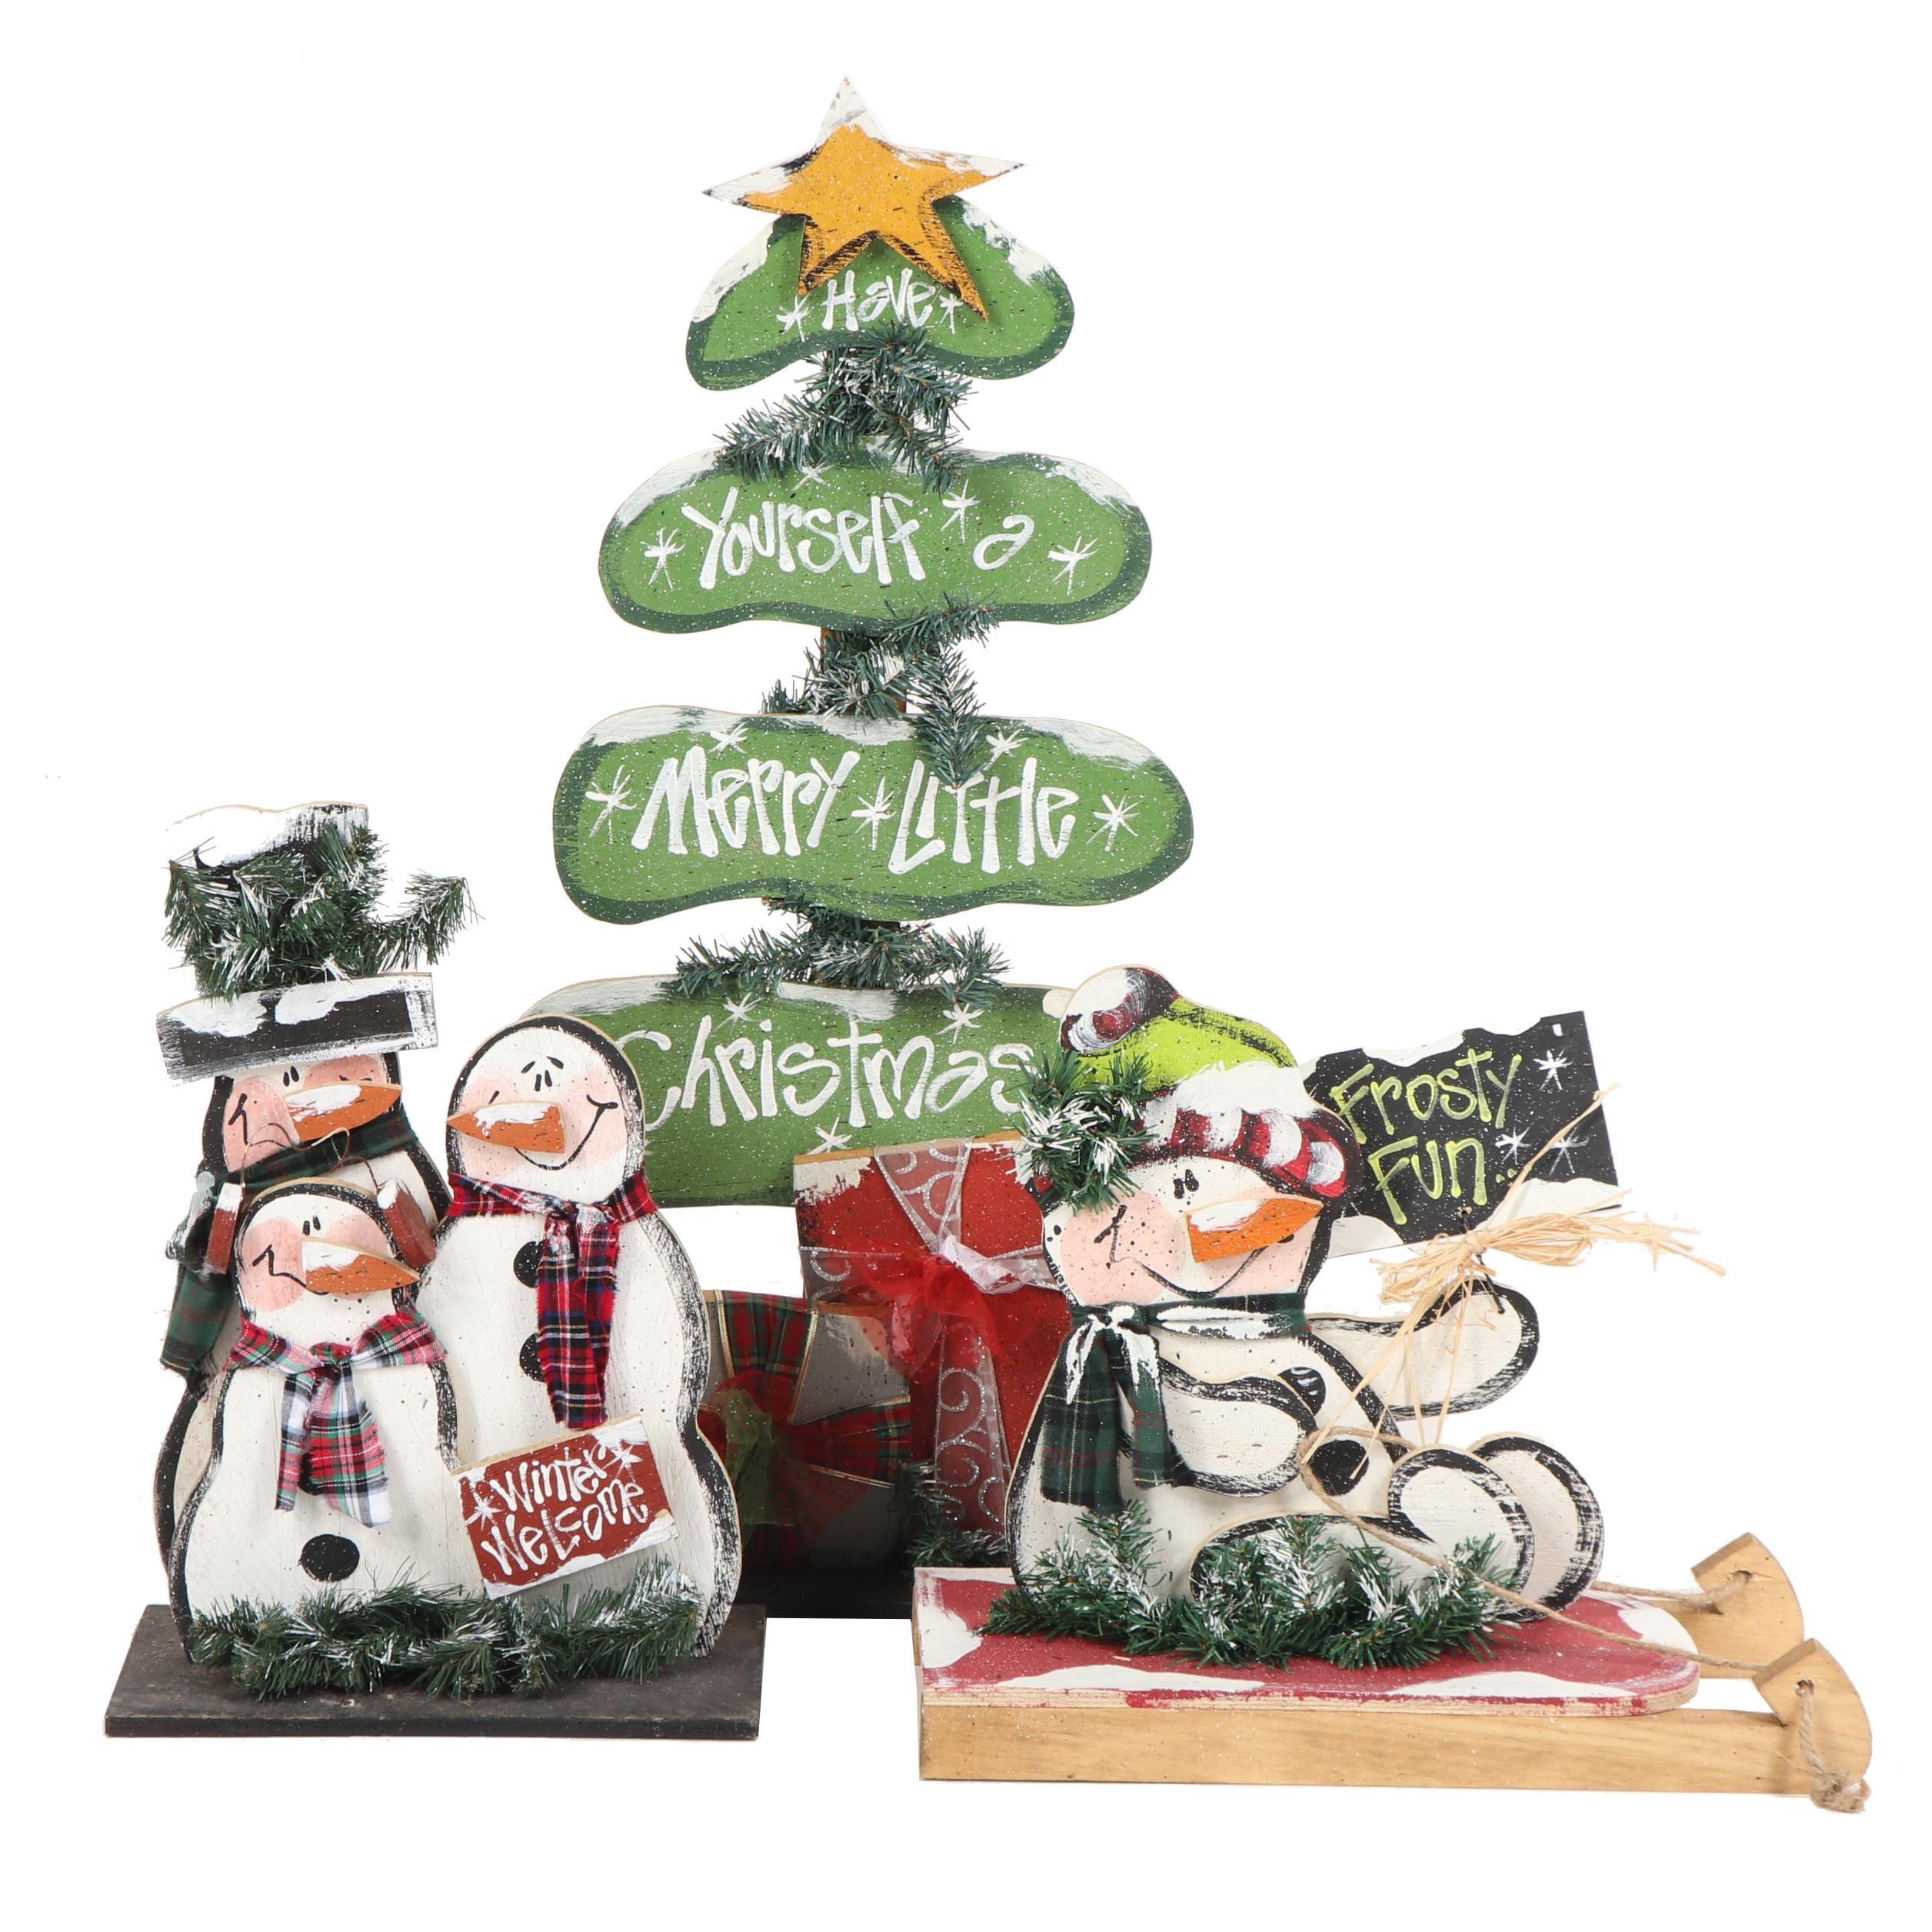 Hand-Painted Decorated Plywood Christmas Decor Featuring Snowmen